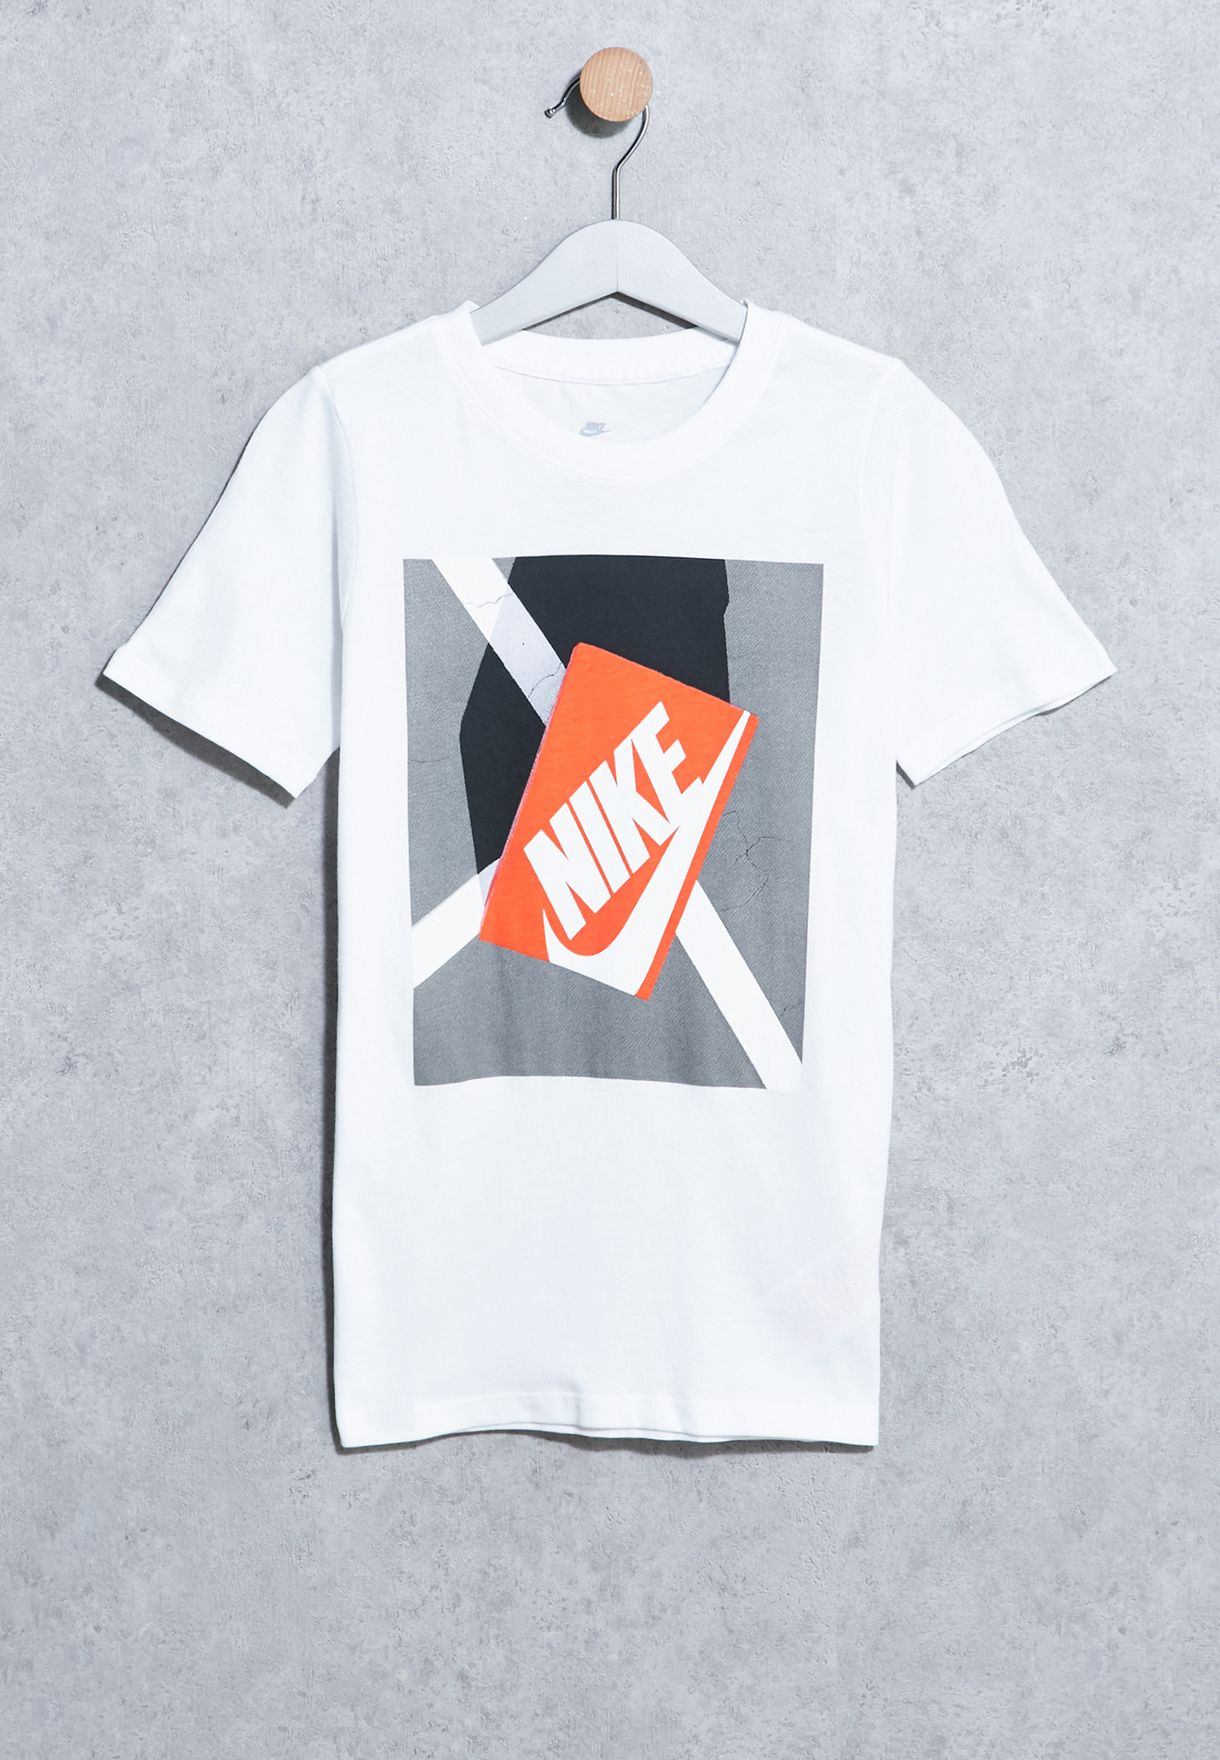 e914acf2fe4ef Shop Nike white Youth Shoe Box T-Shirt 838795-100 for Kids in UAE ...